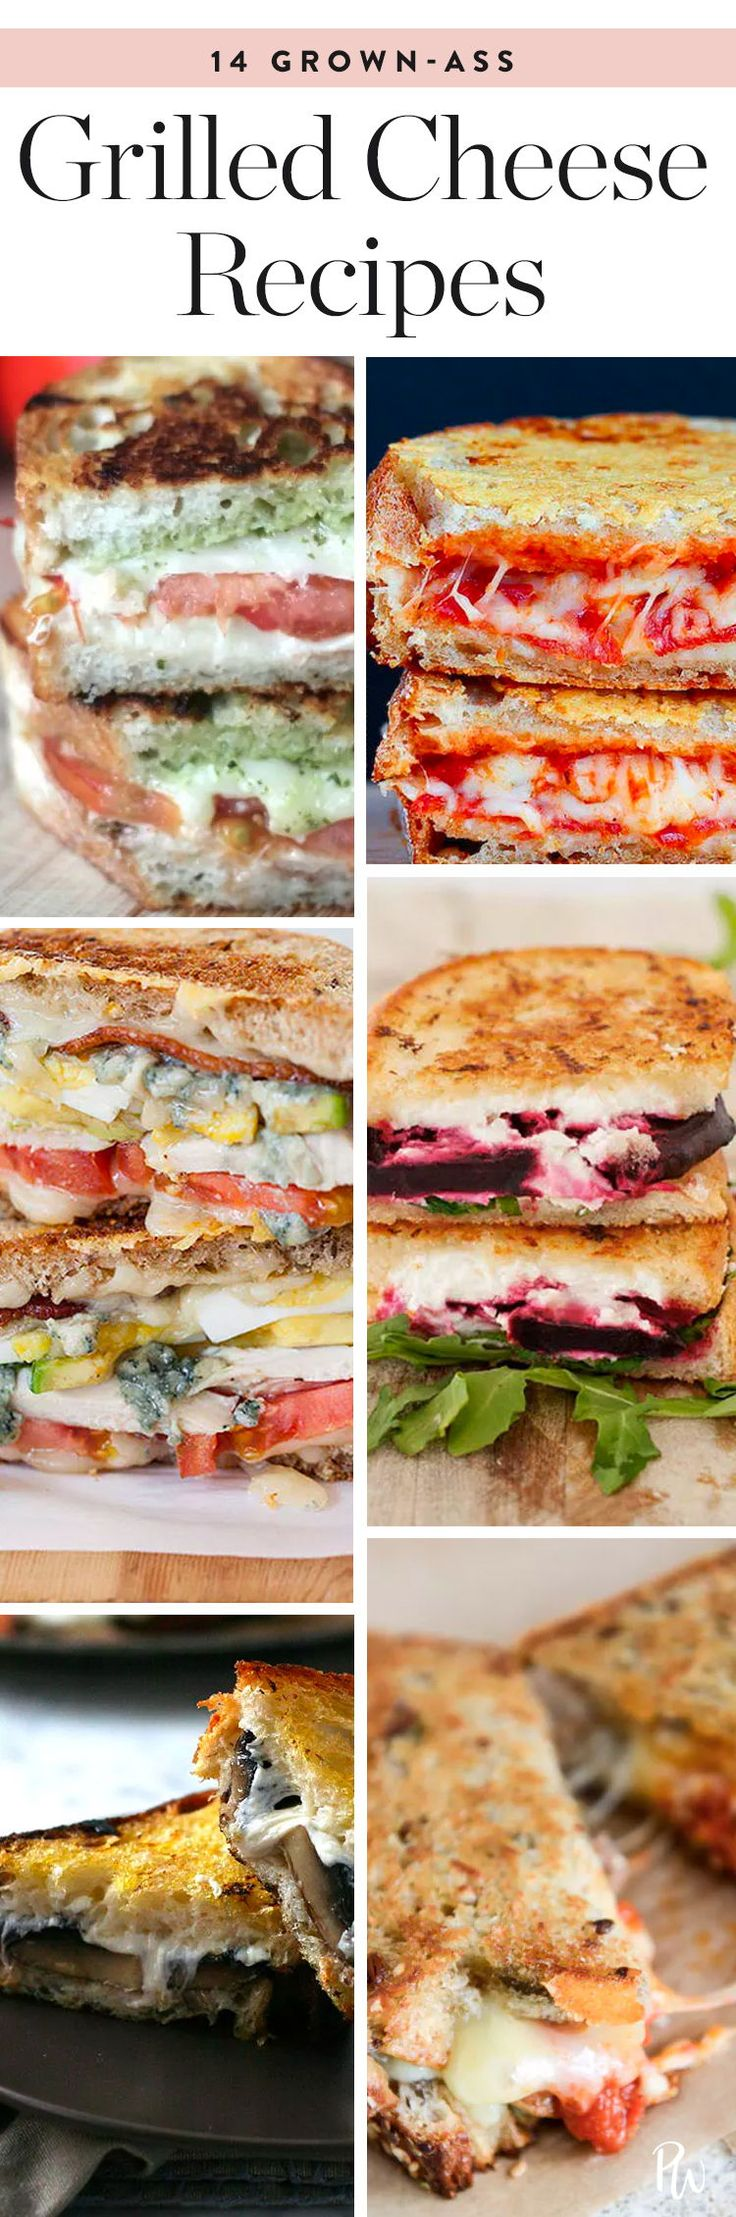 15 Grown-Ass Grilled Cheese Recipes #purewow #cheese #grilledcheese #comfortfood #recipes